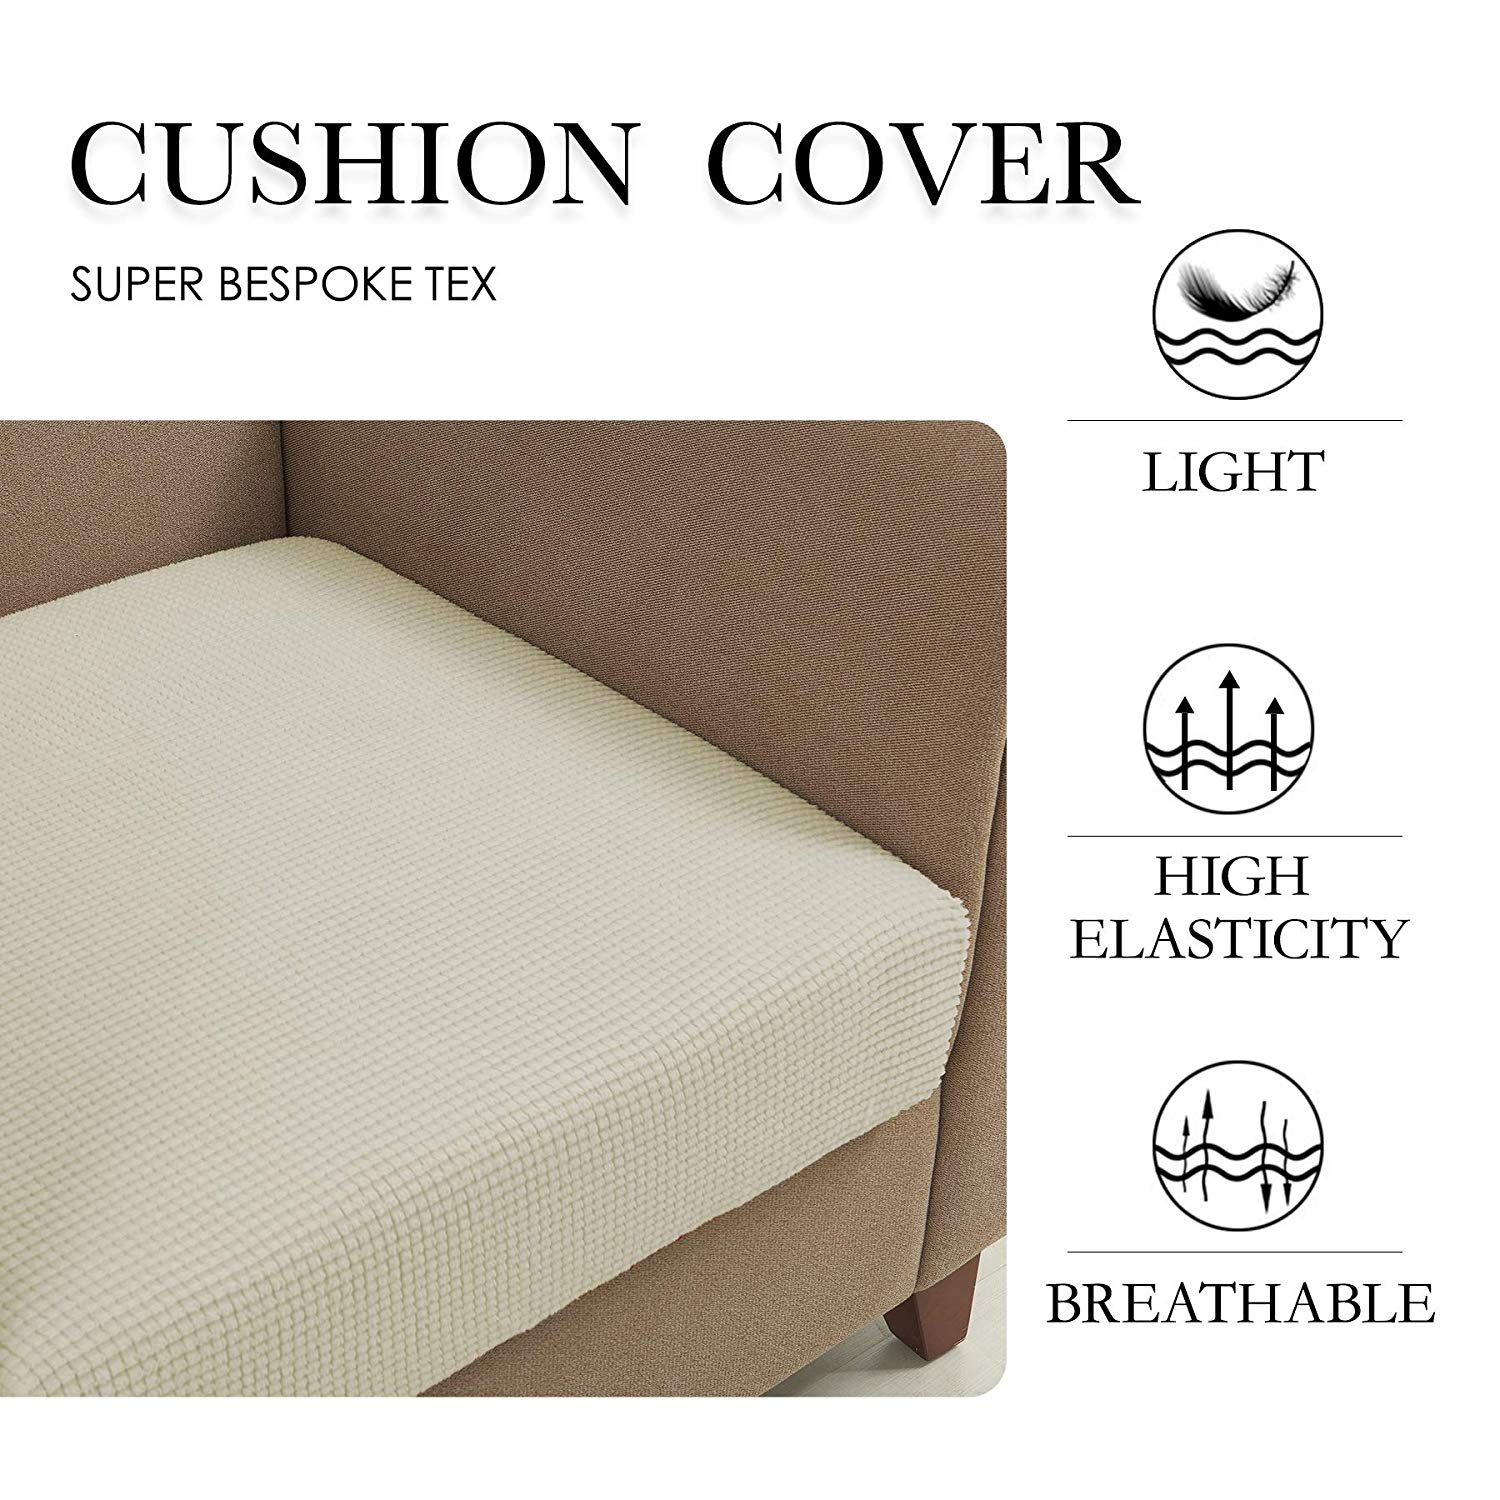 Superb Subrtex Plaid Stretch Sofa Cushion Cover Furniture Protector For Sofa Seat Cushion Dailytribune Chair Design For Home Dailytribuneorg